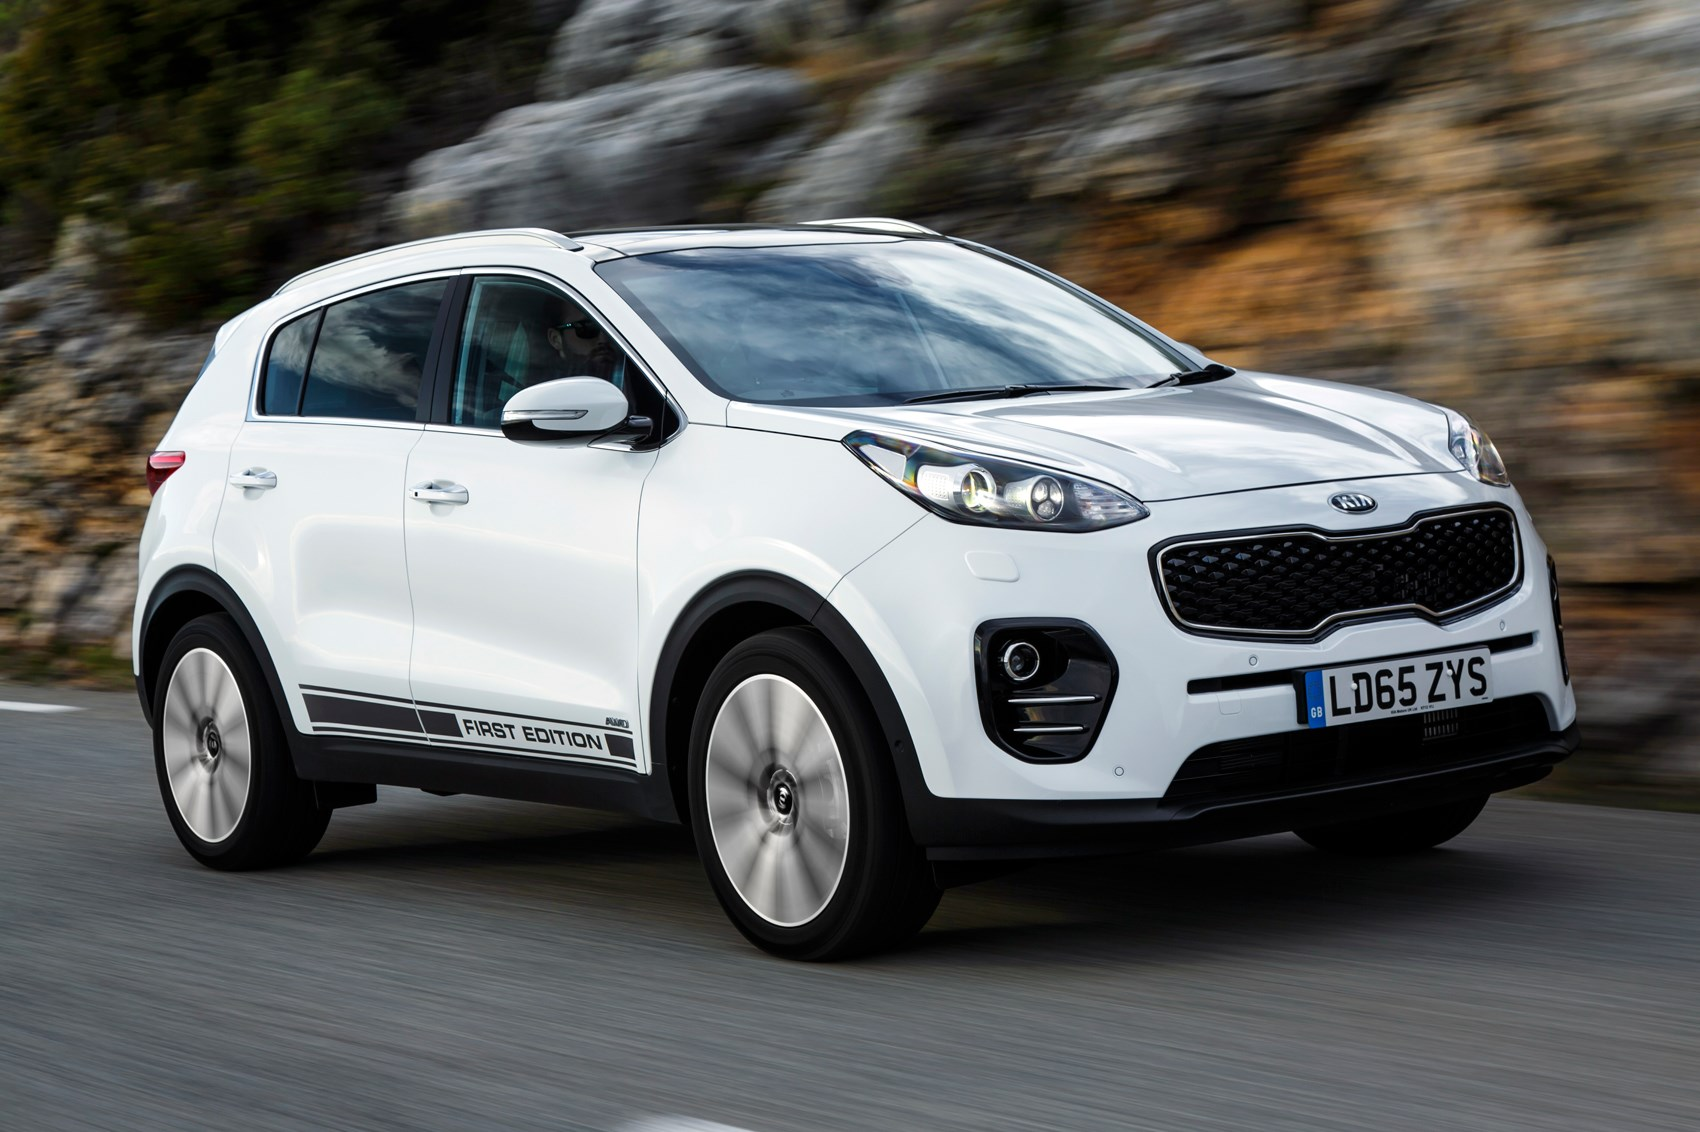 Kia Sportage First Edition 2 0 Crdi 2016 Review